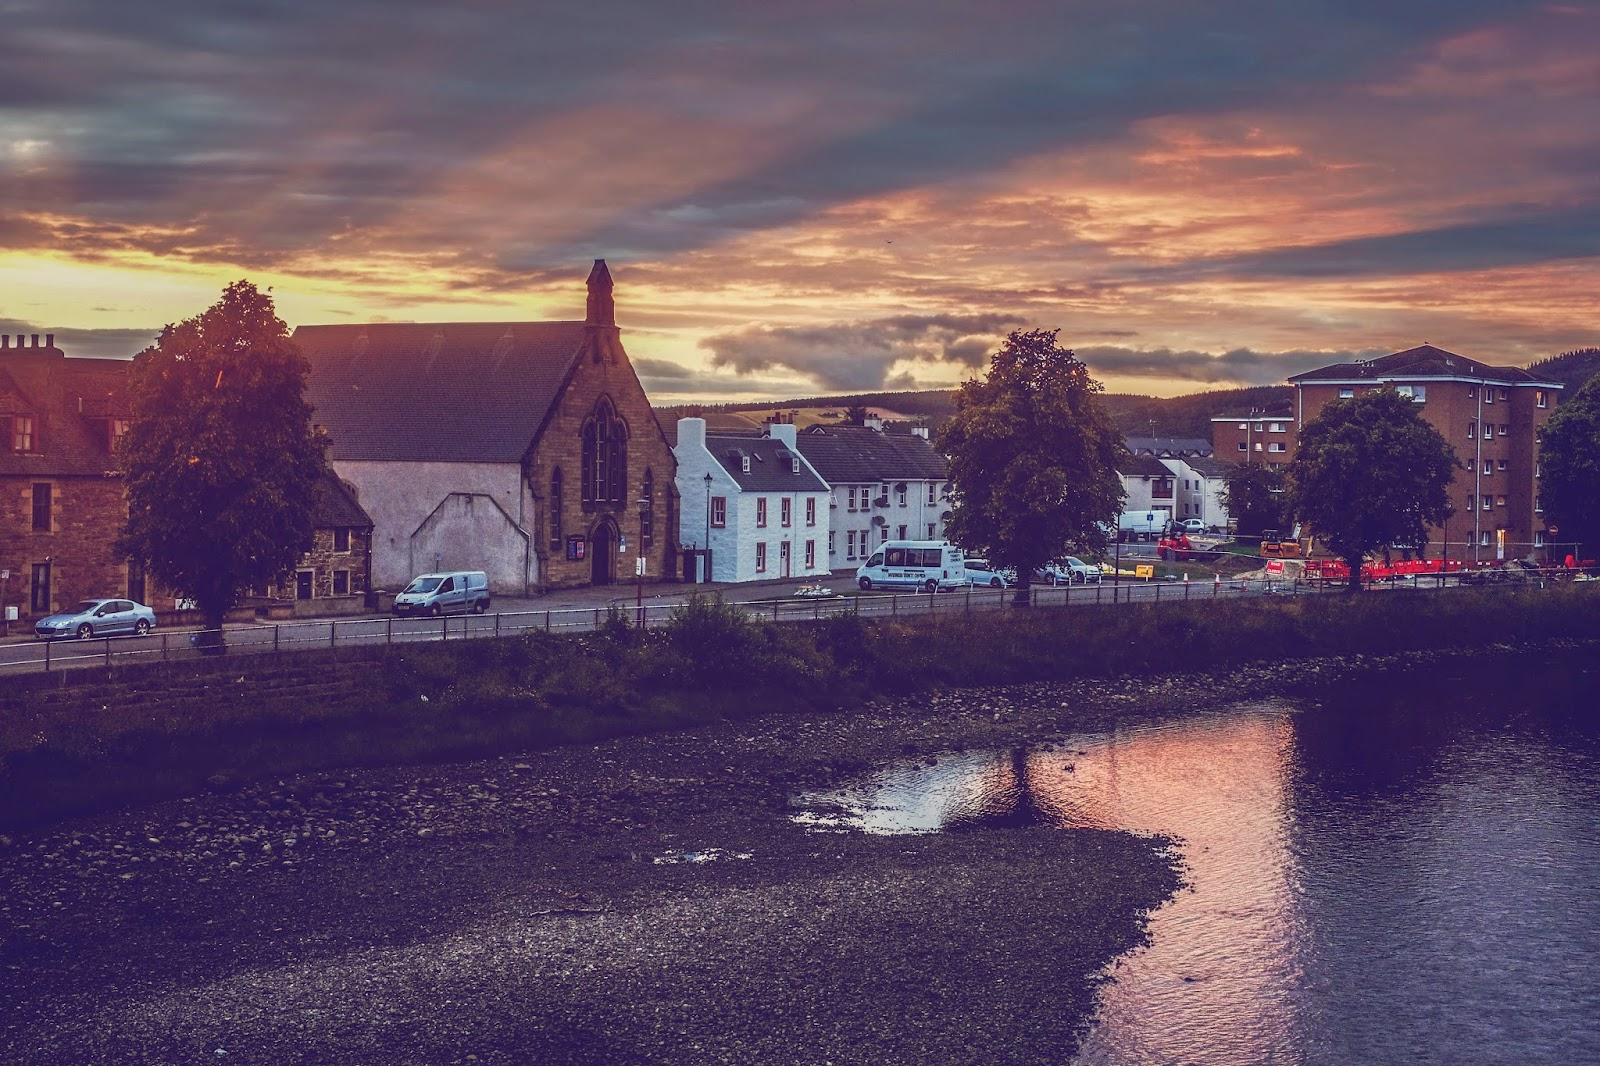 sunset in inverness, mandy charlton, ukcityscapes